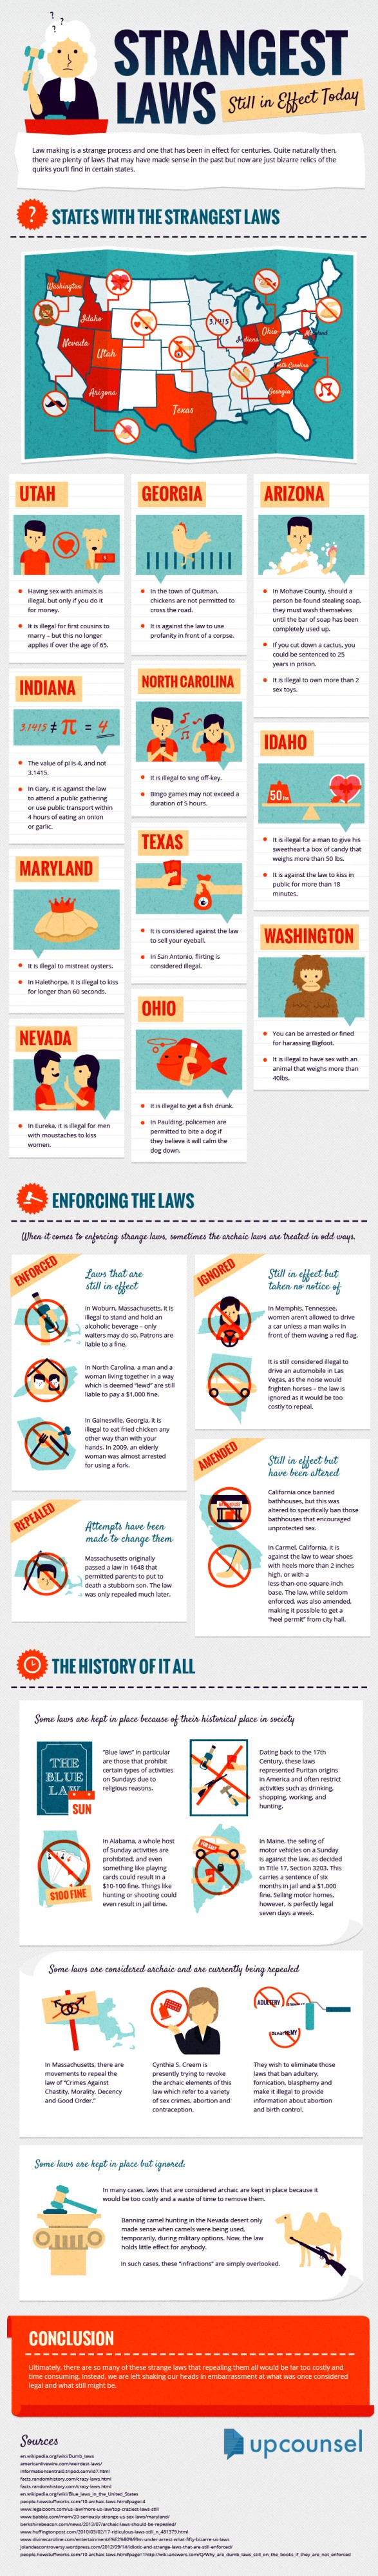 Strangest Laws Still in Effect Today